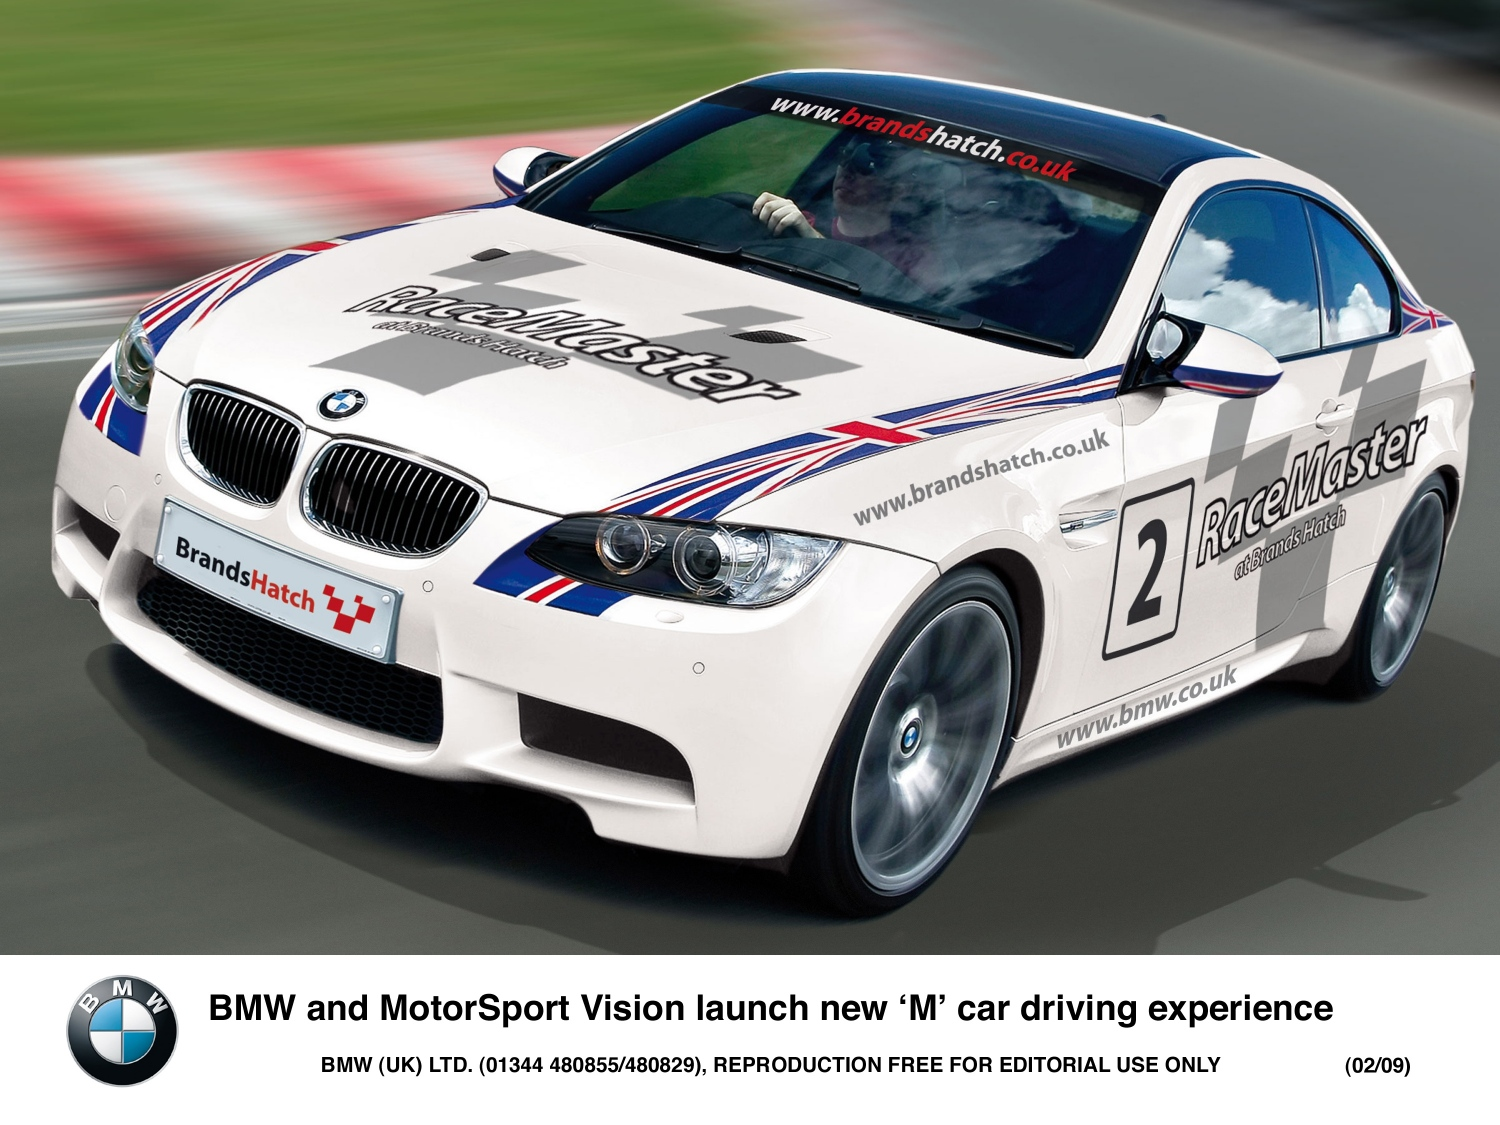 New Cars Design Bmw Motorsport